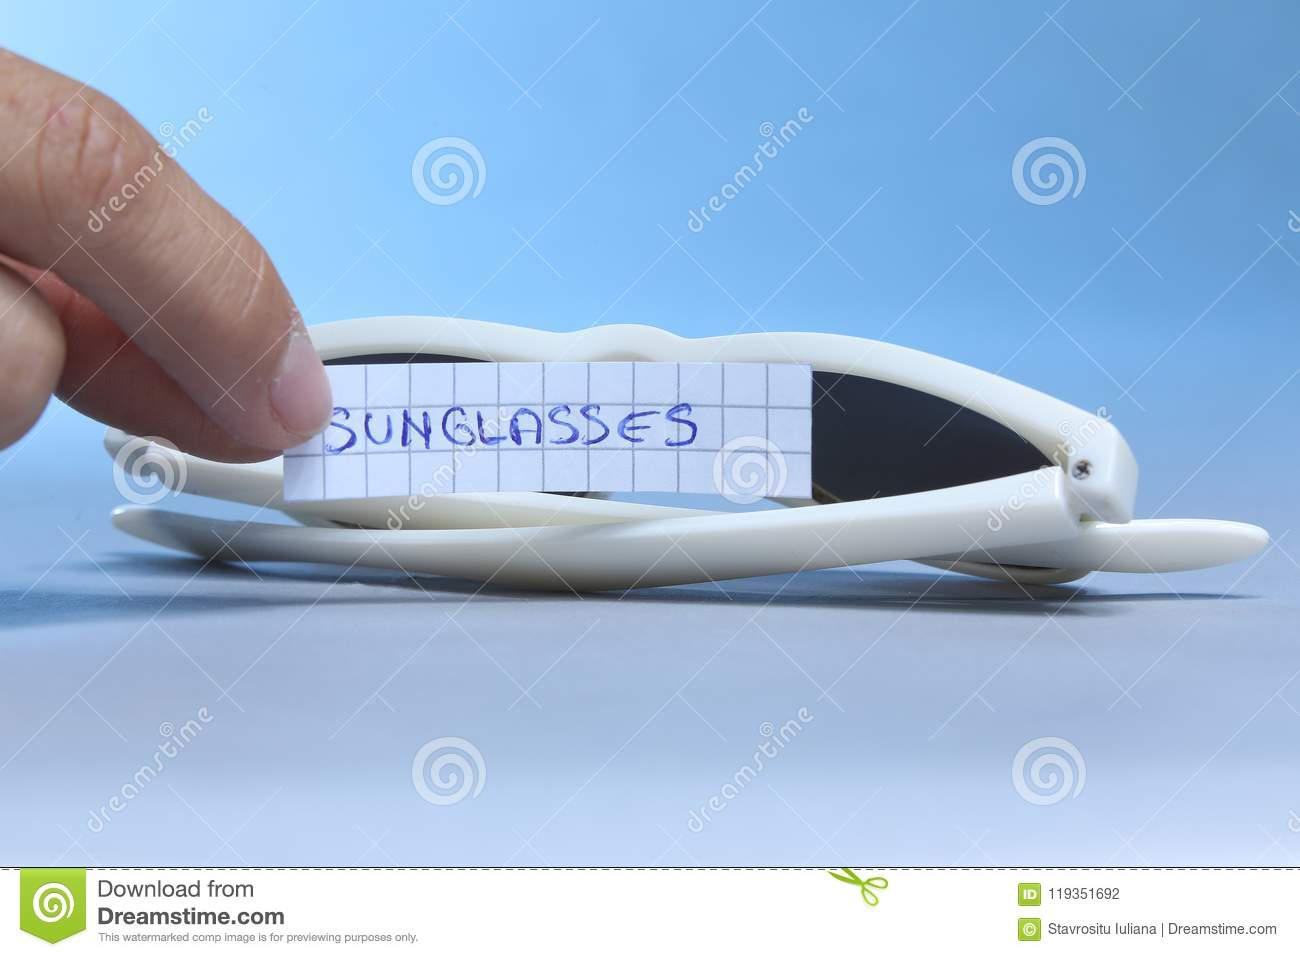 Sunglasses, white background